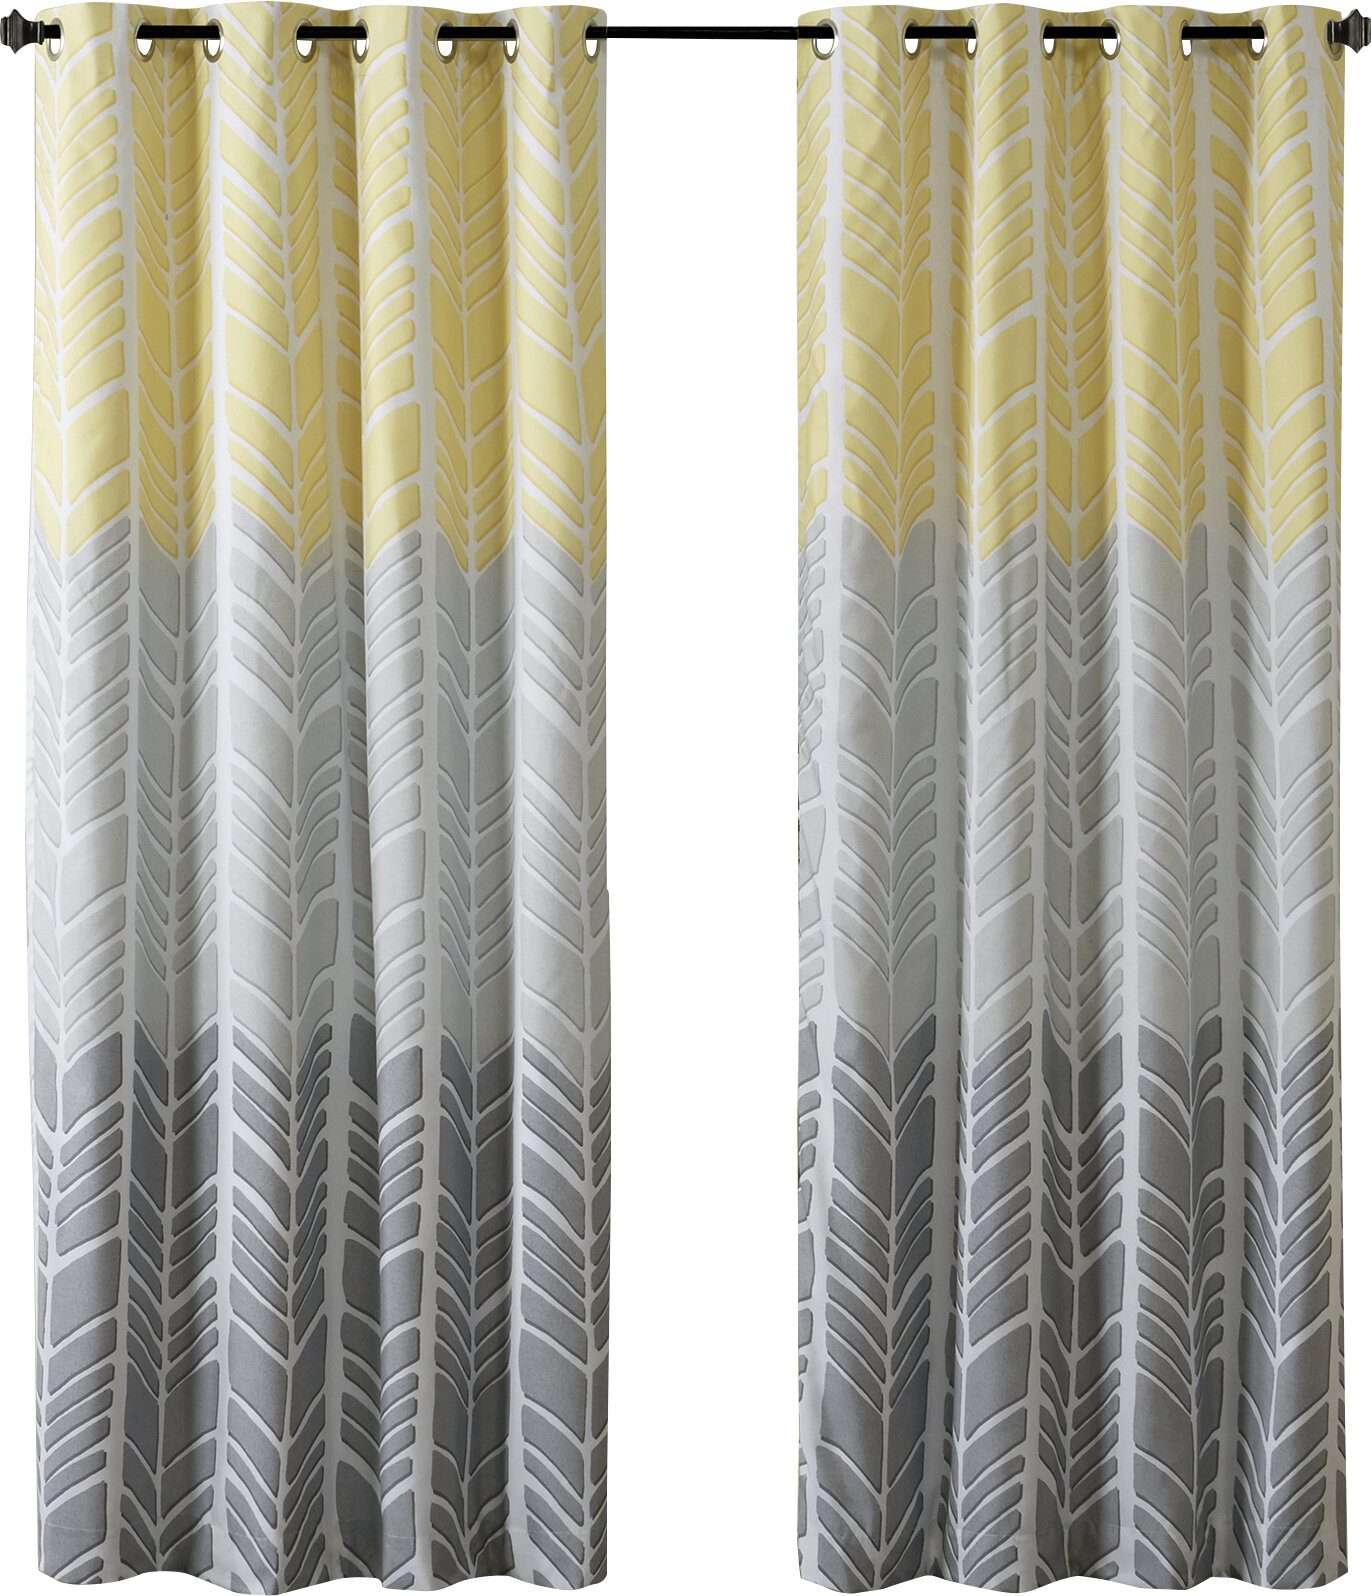 Stansel Chevron Max Blackout Grommet Single Curtain Panel Pertaining To Chevron Blackout Grommet Curtain Panels (View 17 of 20)